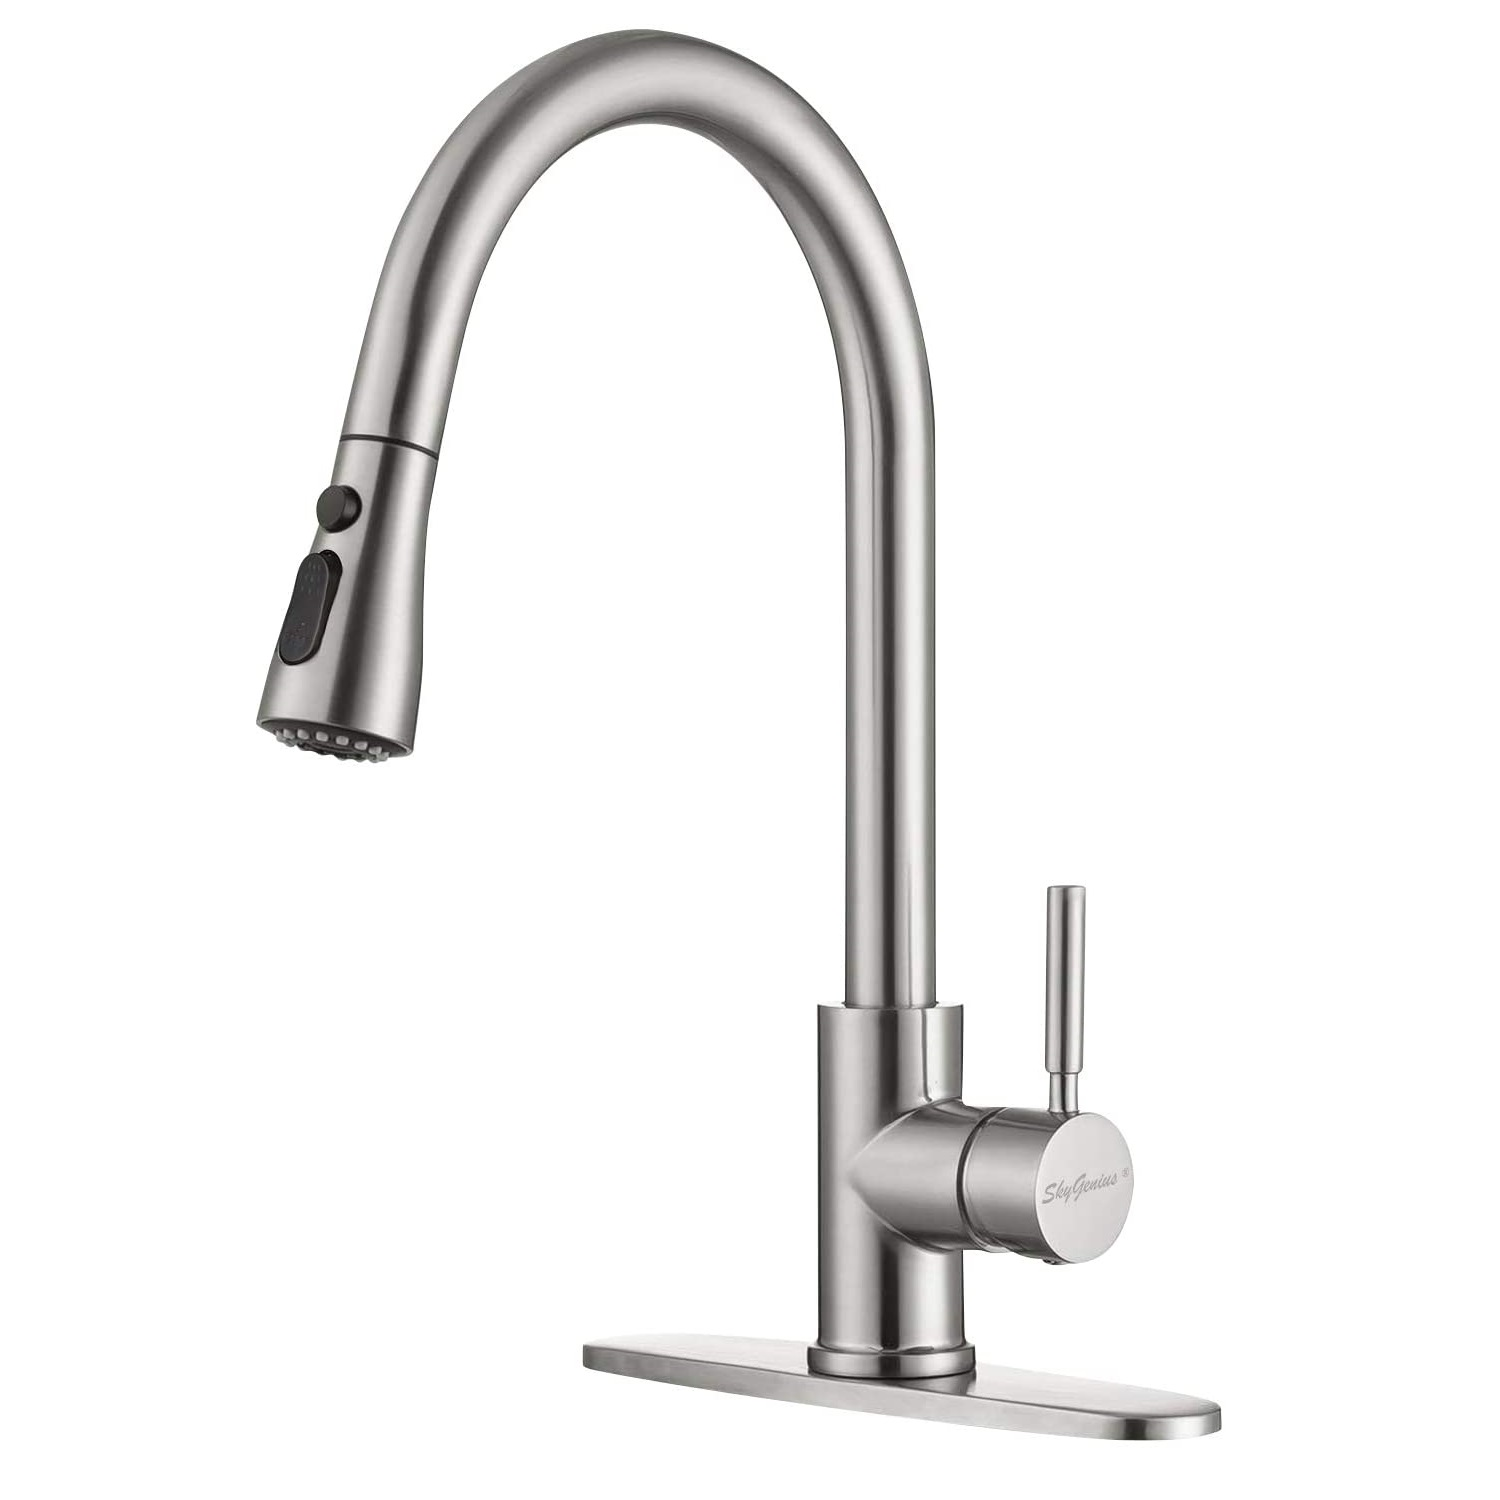 skygenius pull down kitchen faucet with sprayer single handle sink faucet brushed nickel for kitchen